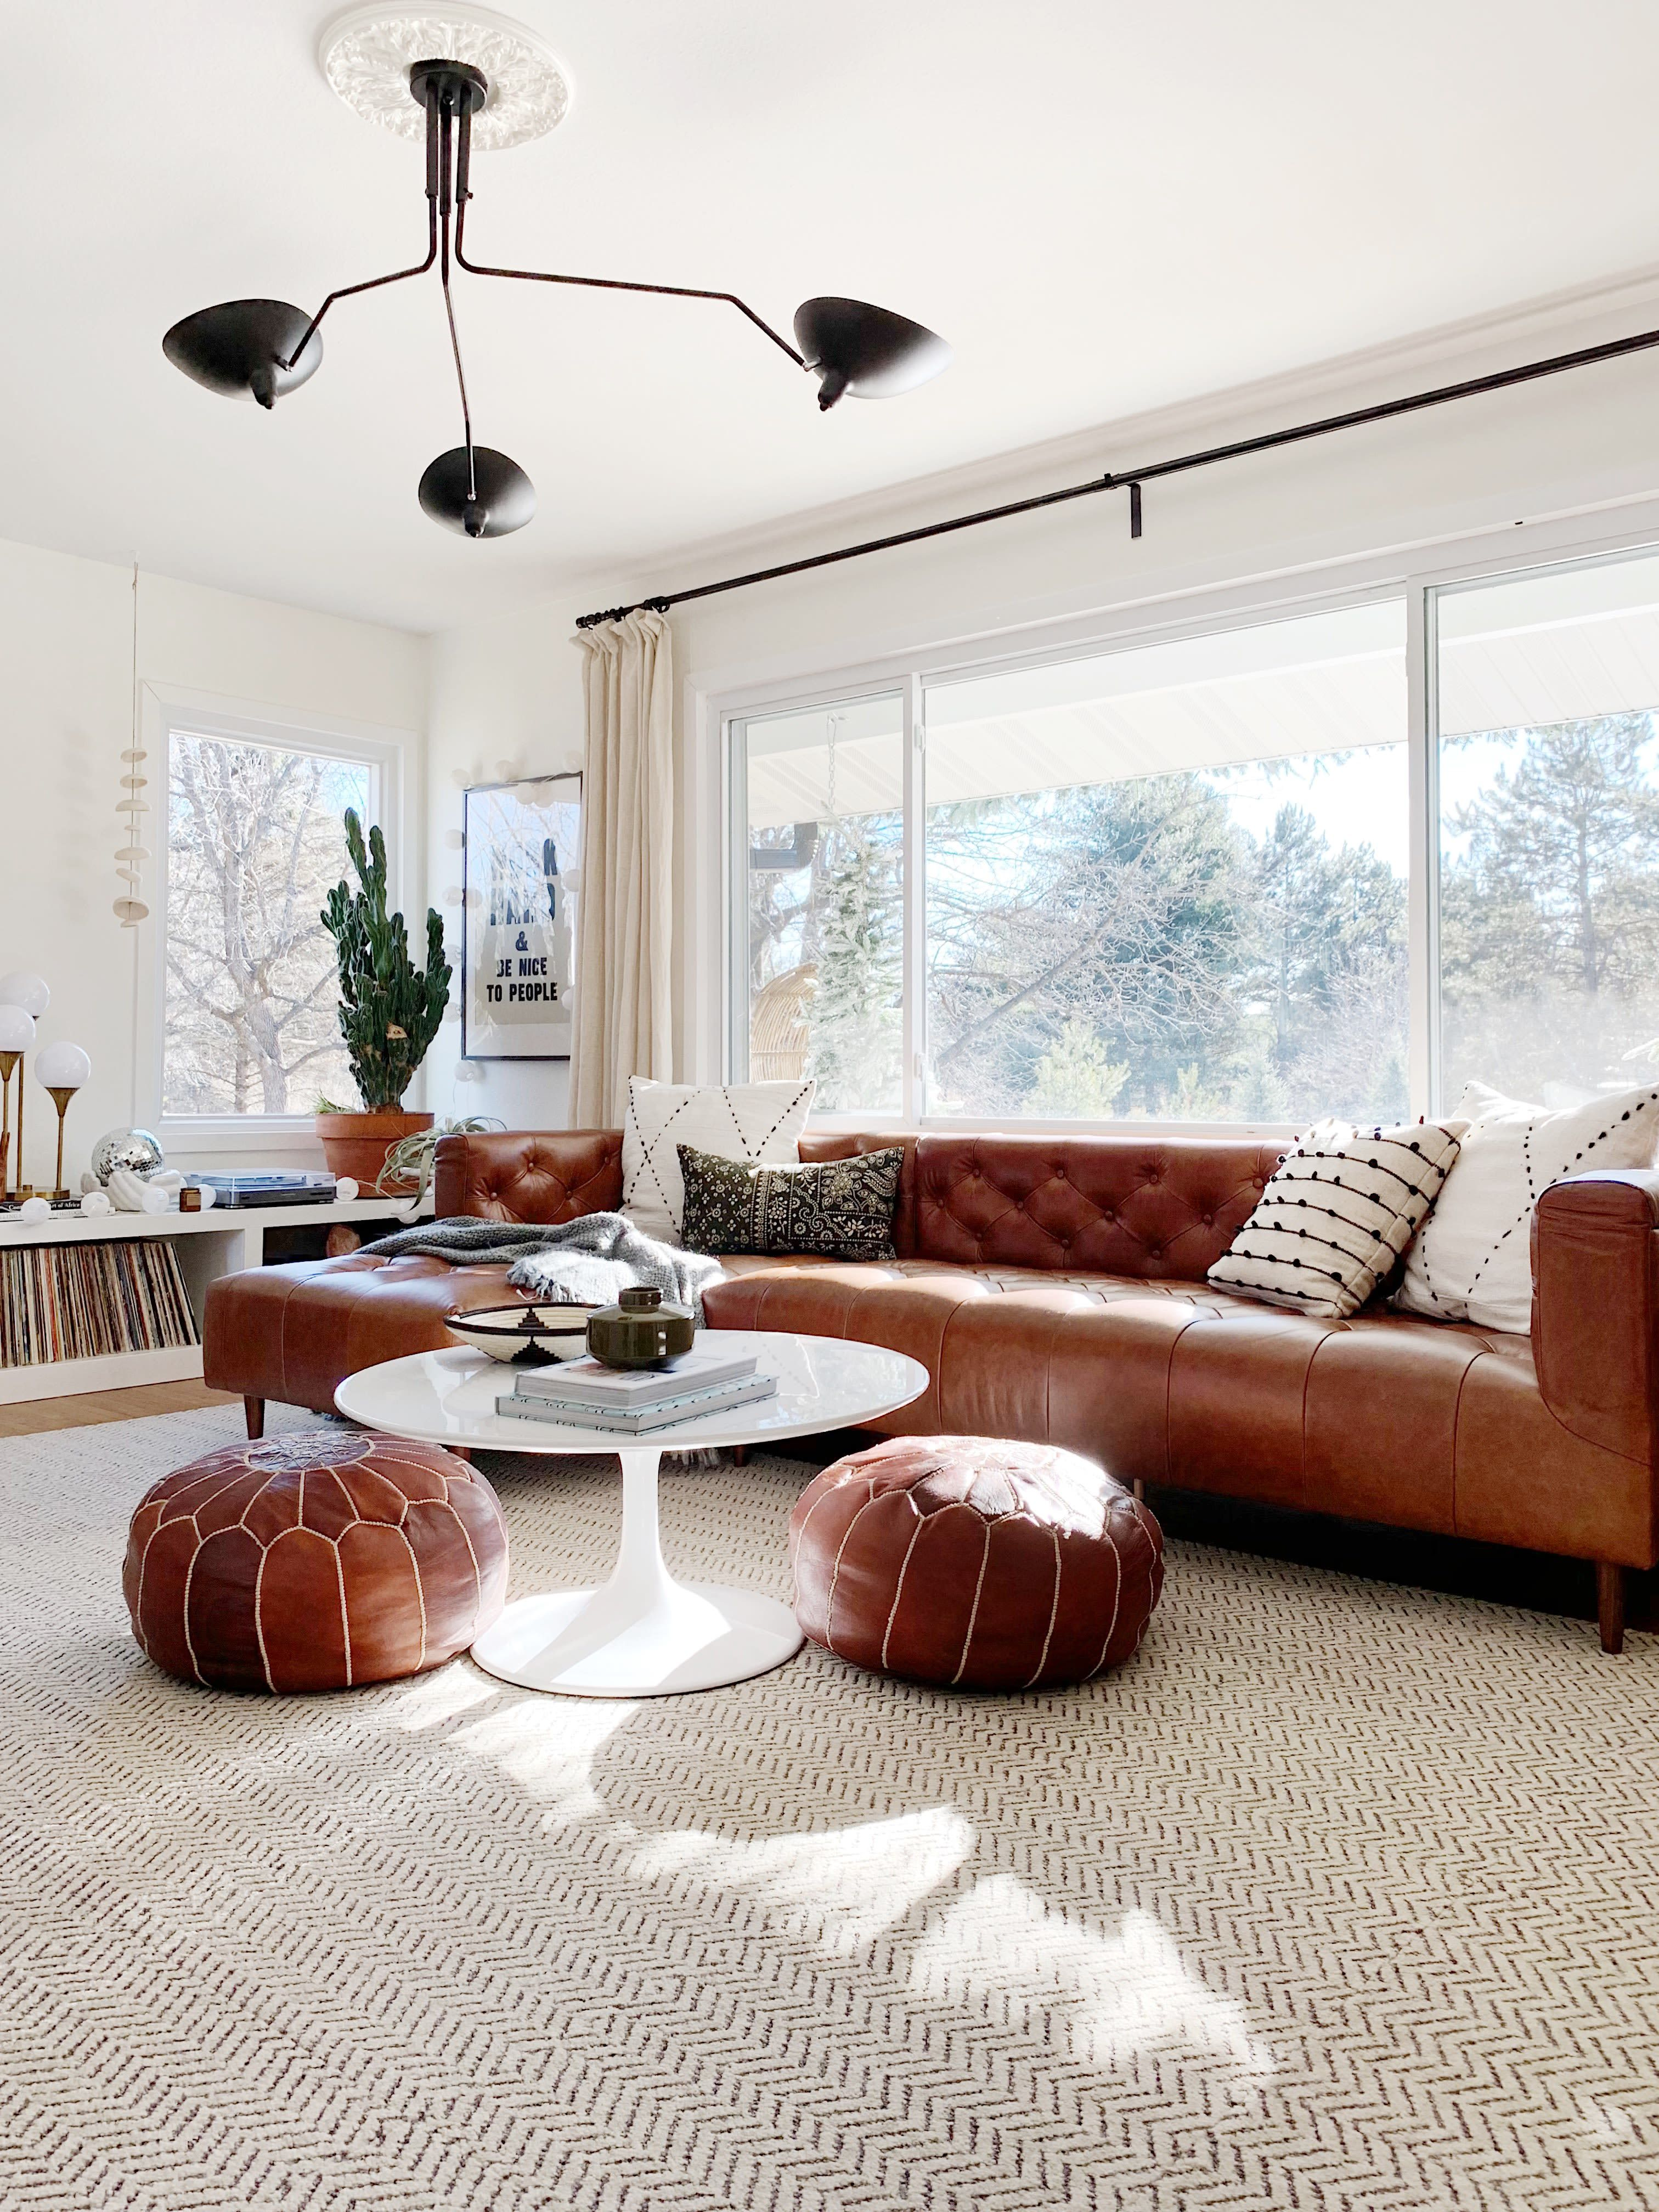 6 Ways To Re Think Your Living Room Seating Plan No Matter Its Size Living Room Seating Livingroom Layout Rooms Home Decor